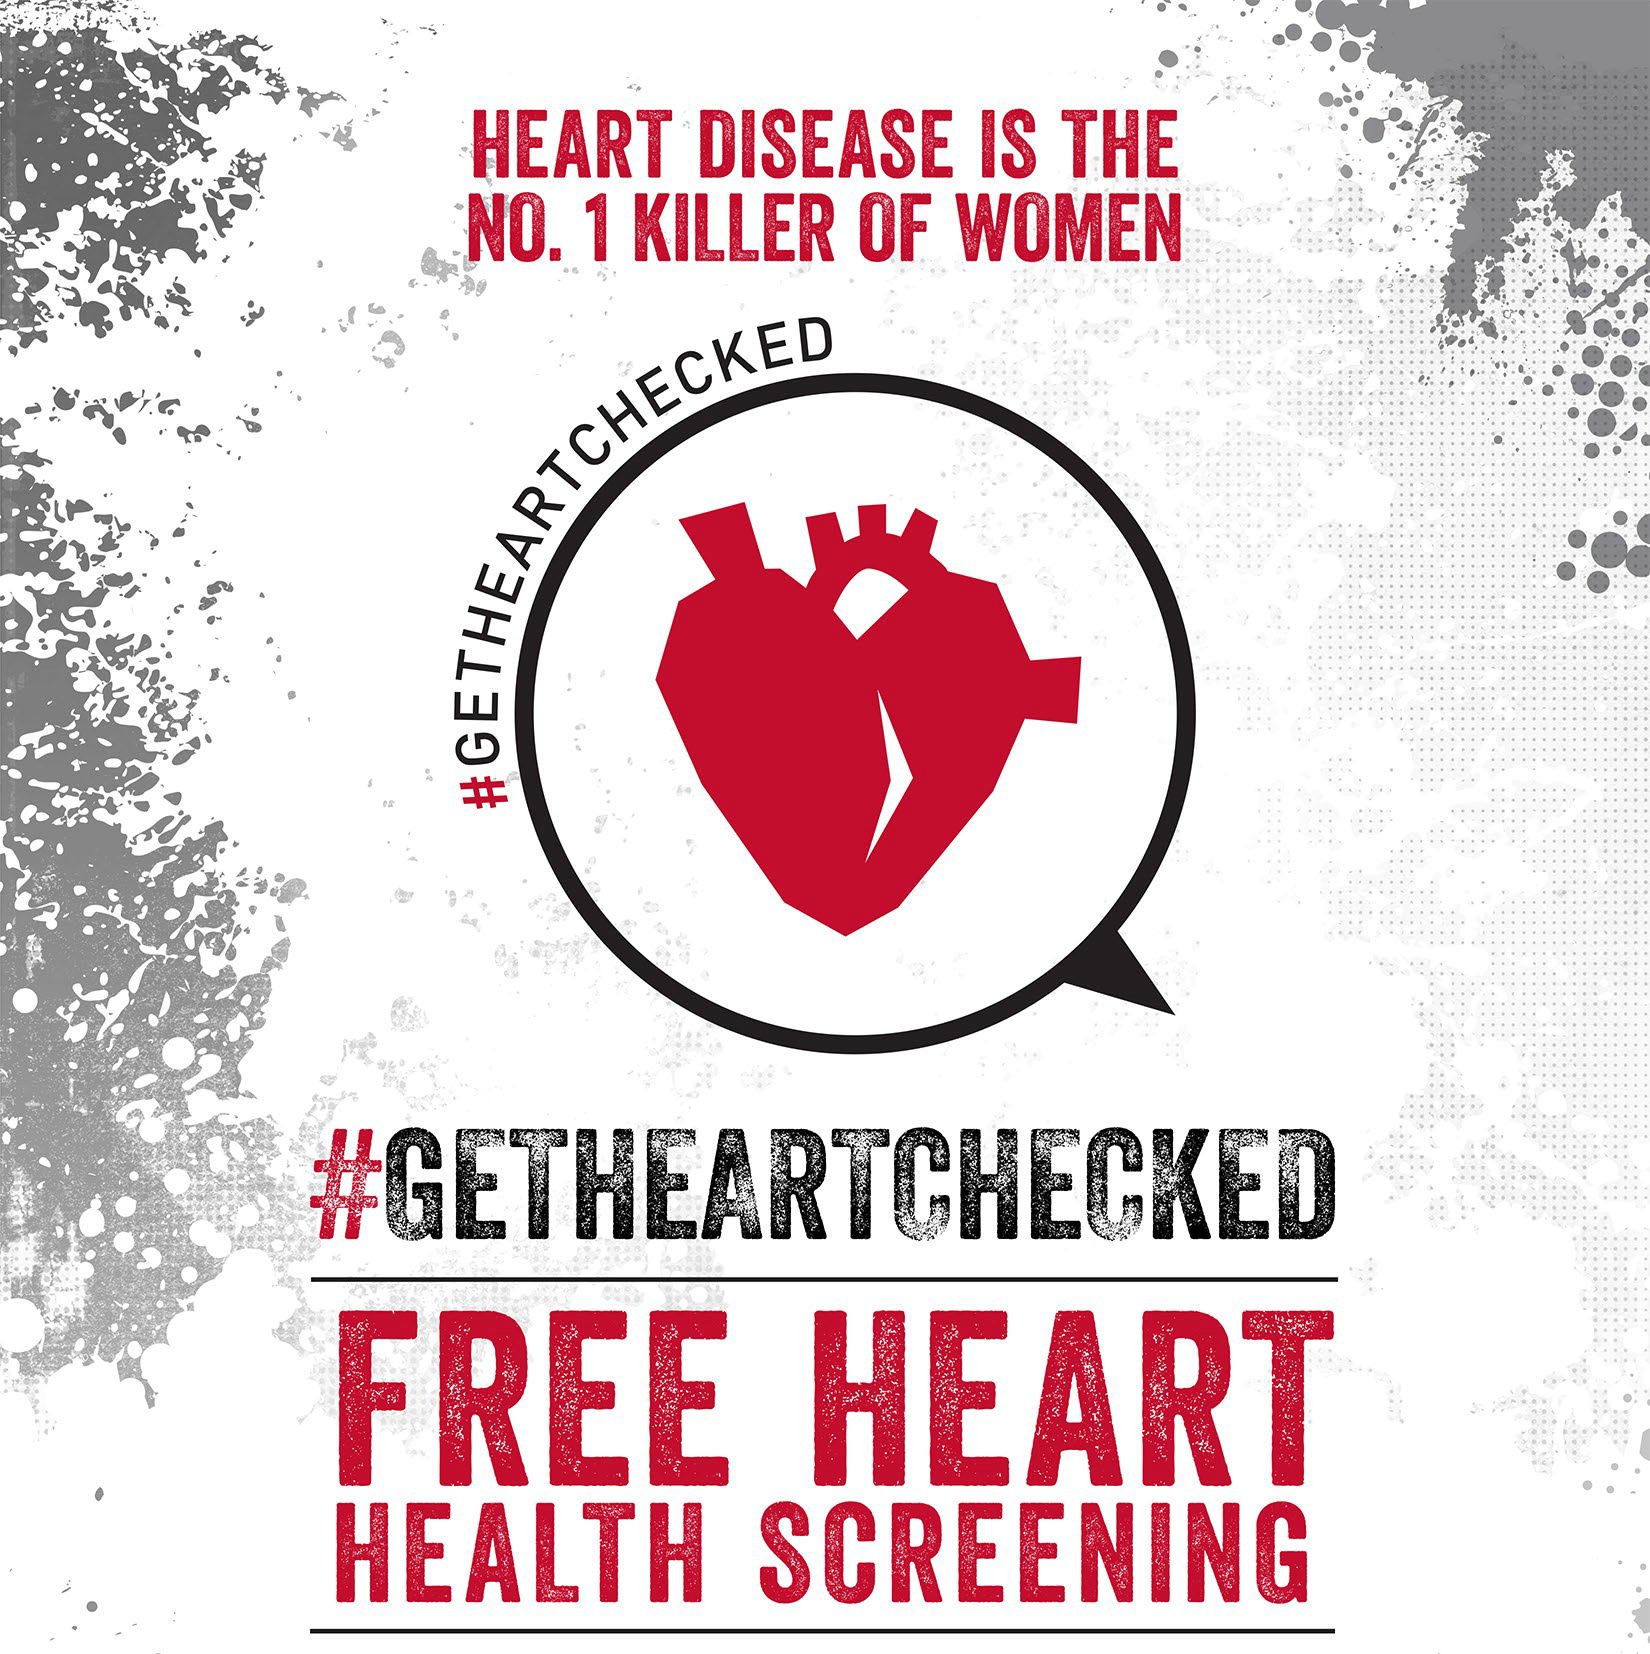 Get heart checked